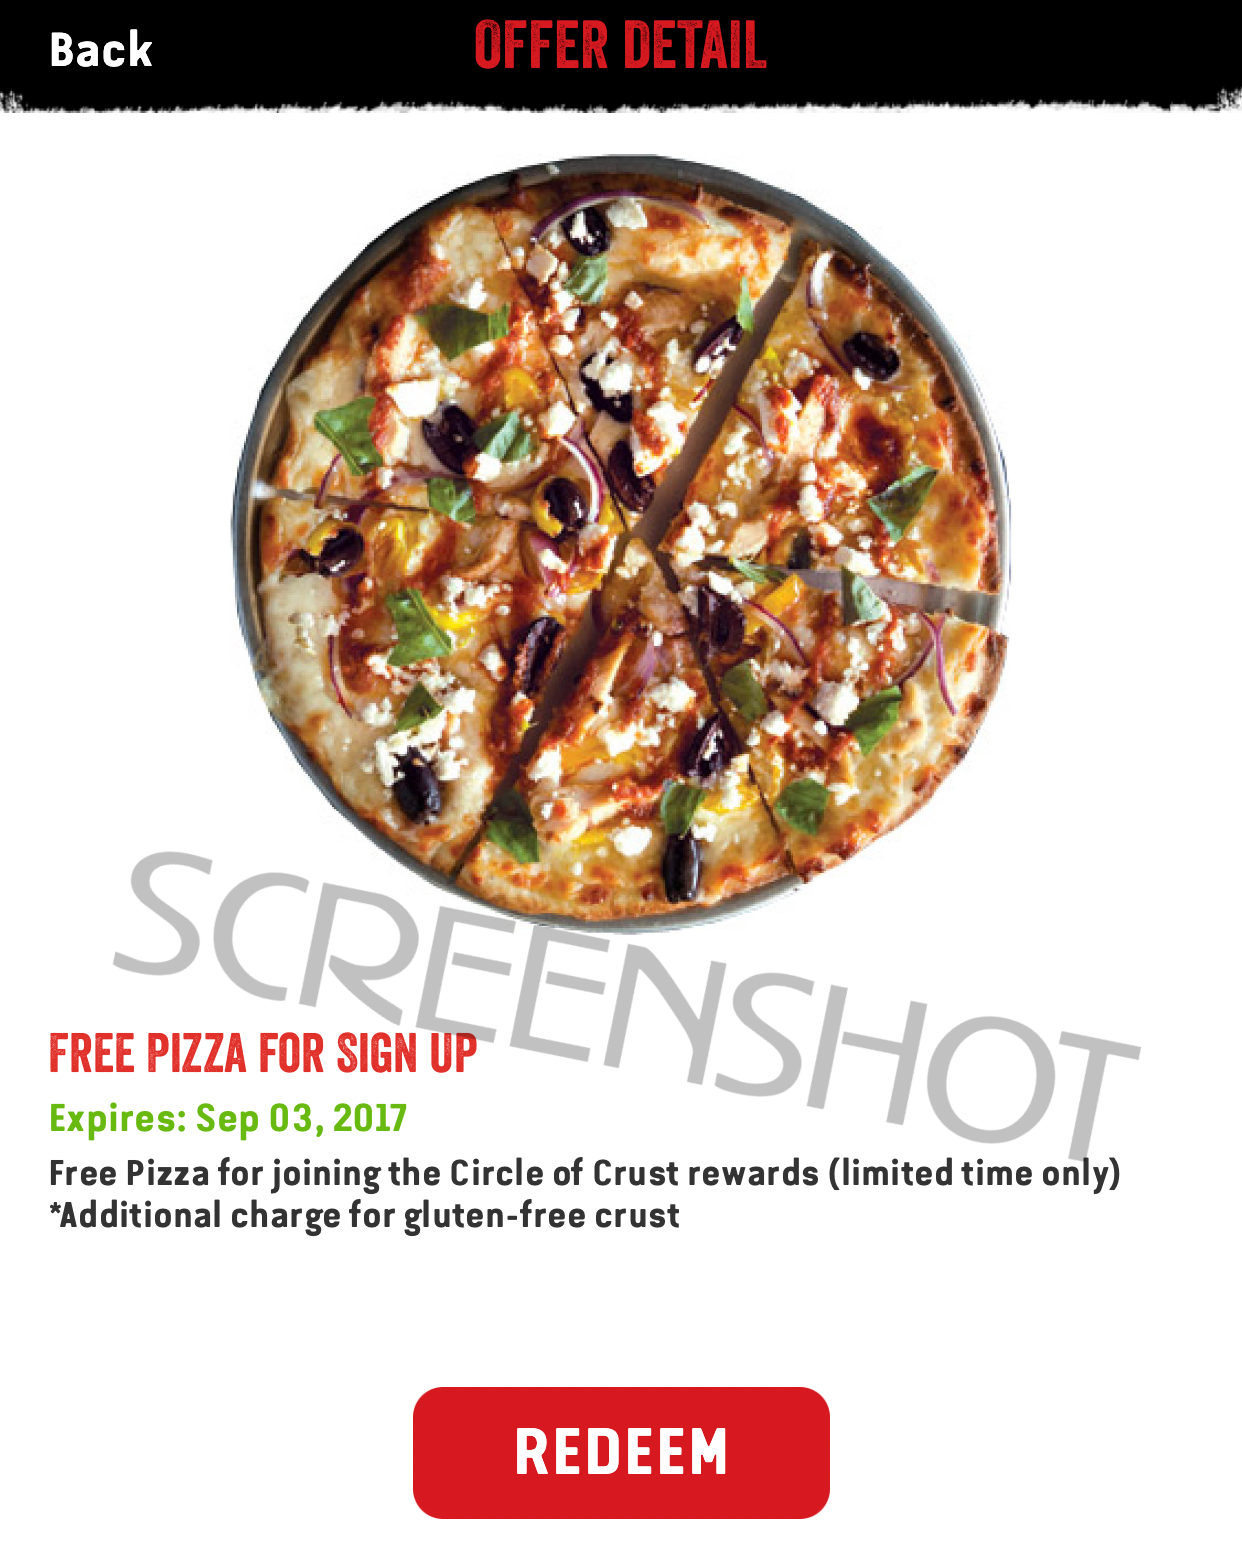 FREE Pizza at Pie Five Pizza